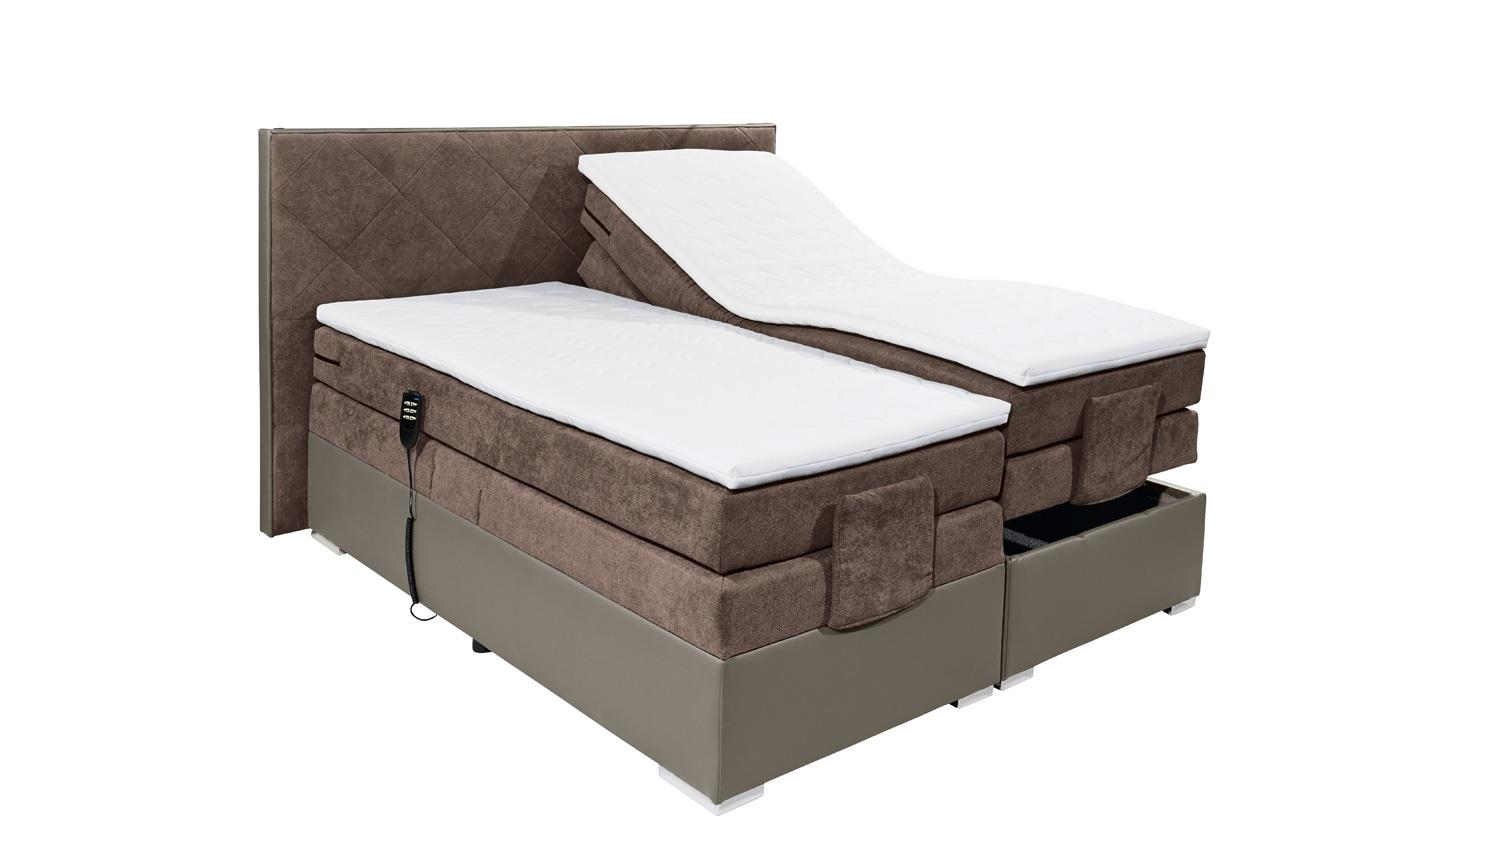 boxspringbett trenton 3 in grau braun 7 zonen ttfk mit motor 180x200. Black Bedroom Furniture Sets. Home Design Ideas